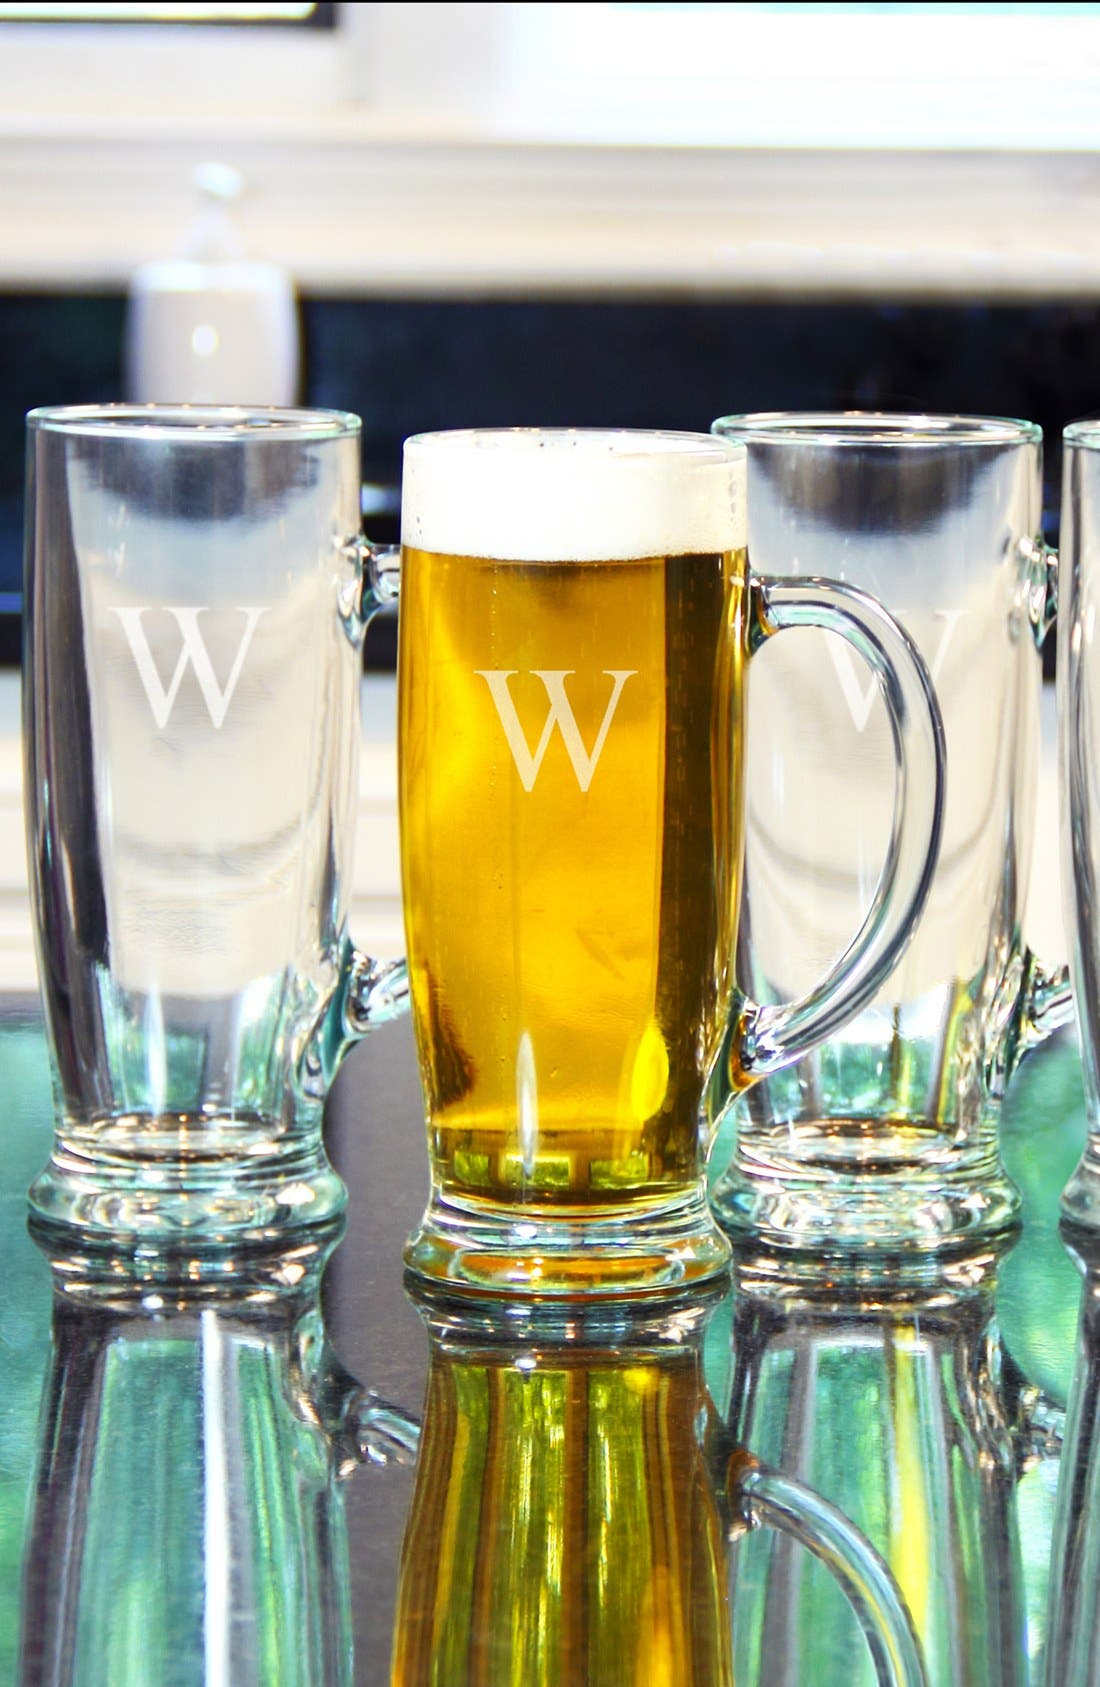 Alternate Image 1 Selected - Cathy's Concepts Personalized Craft Beer Mugs (Set of 4)